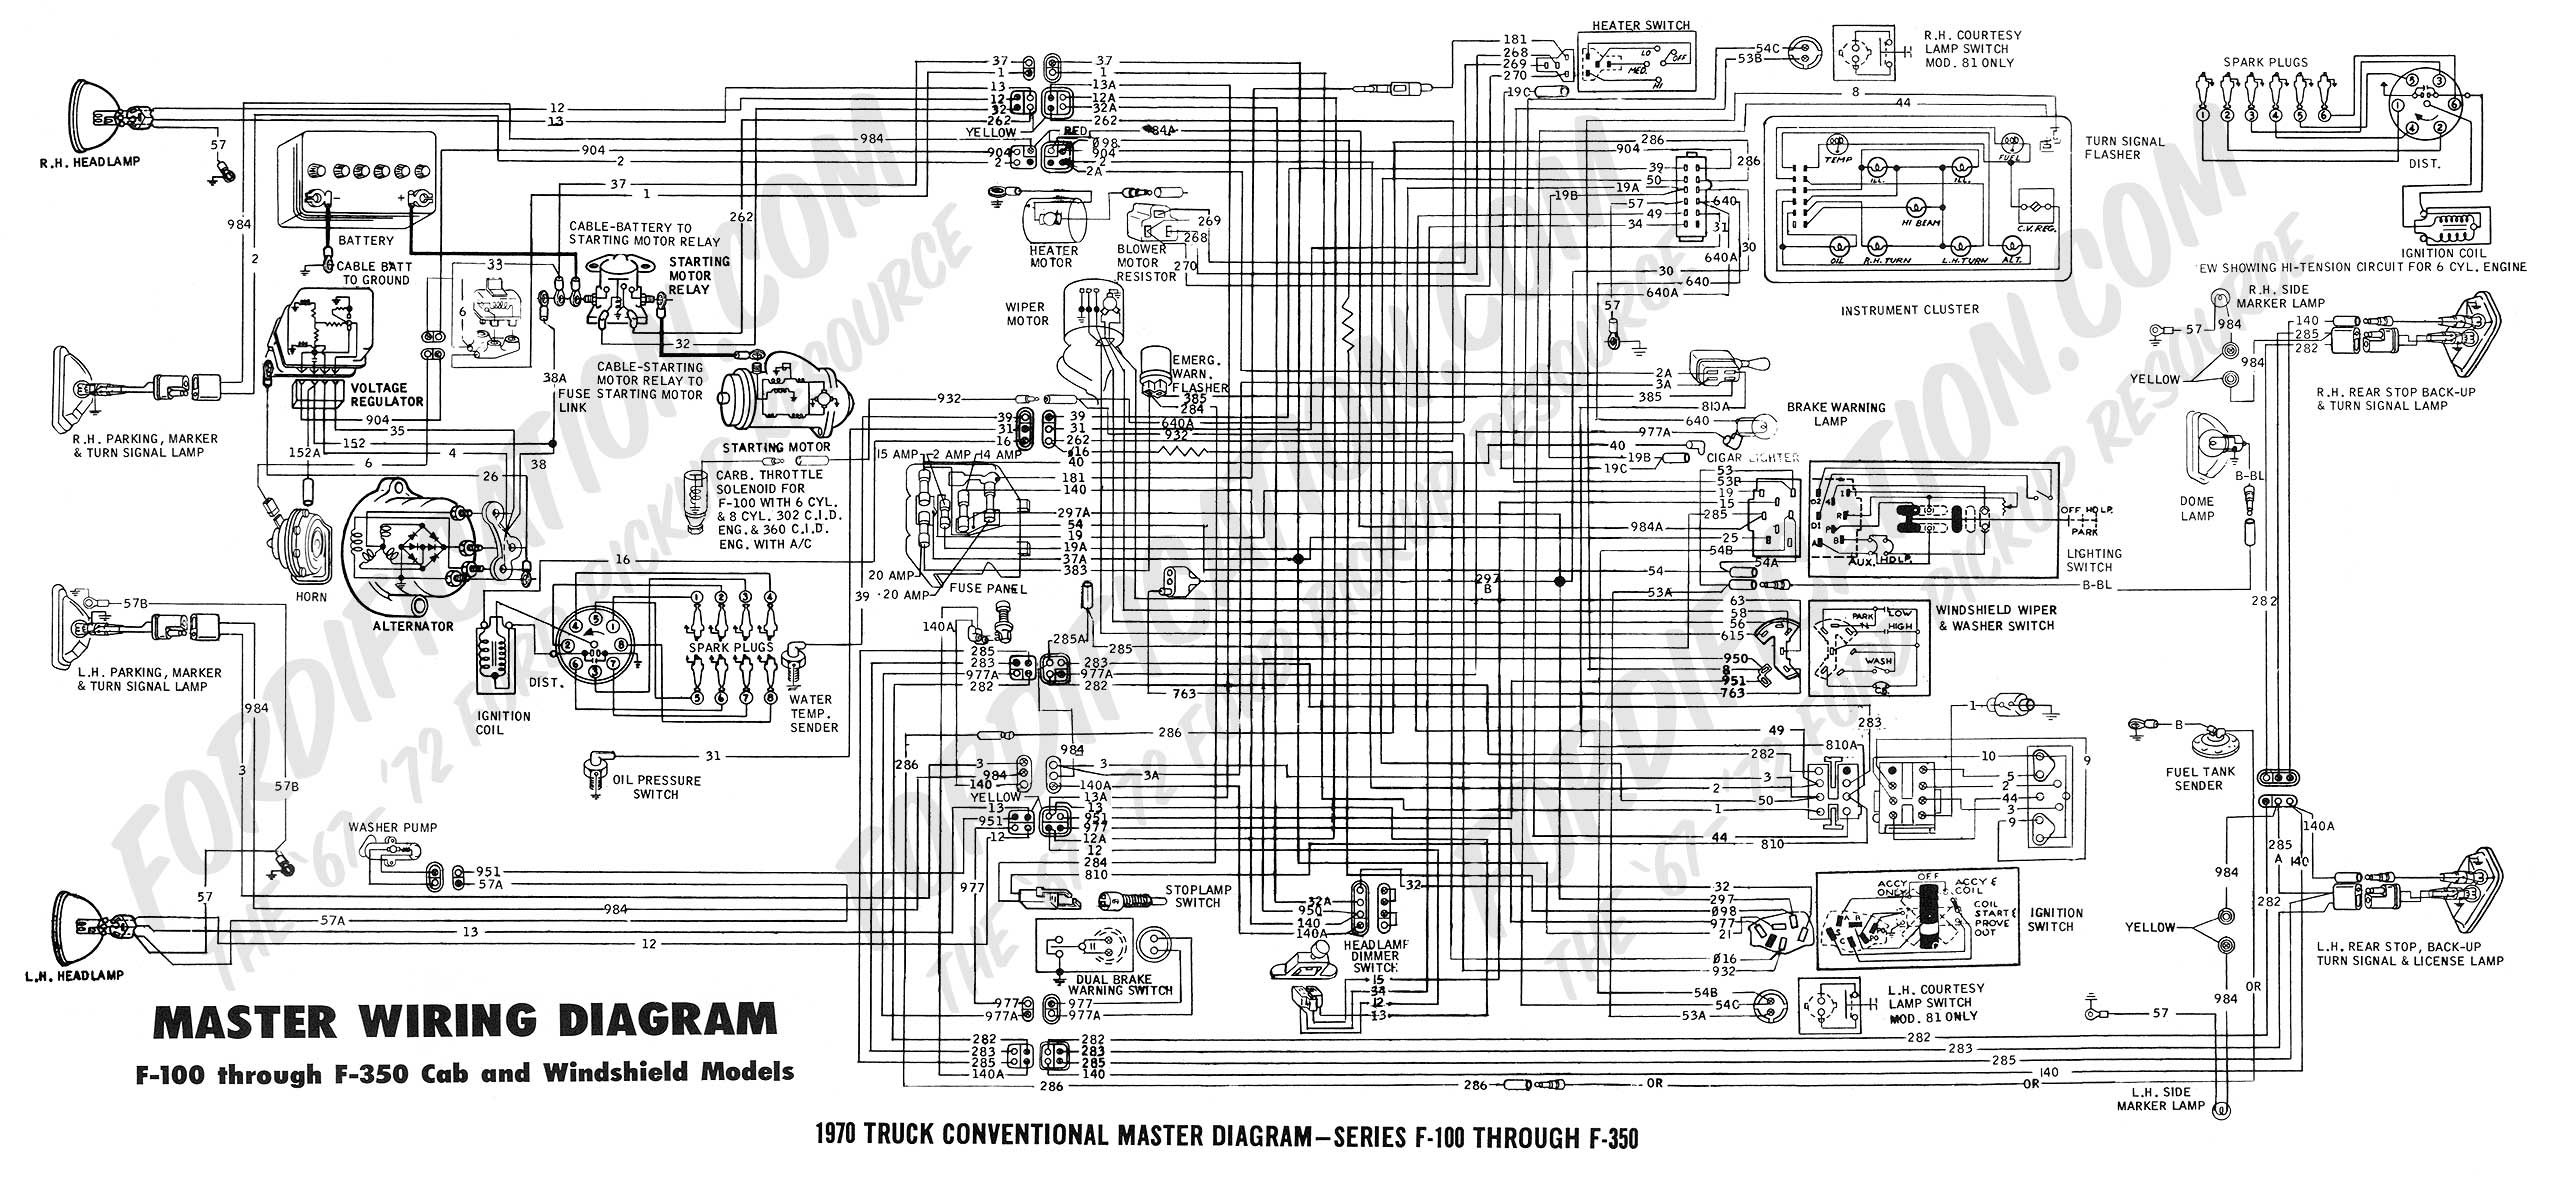 1973 F250 Wiring Diagram Library Of Diagrams Ford Mustang 1972 Schematics U2022 Rh Seniorlivinguniversity Co